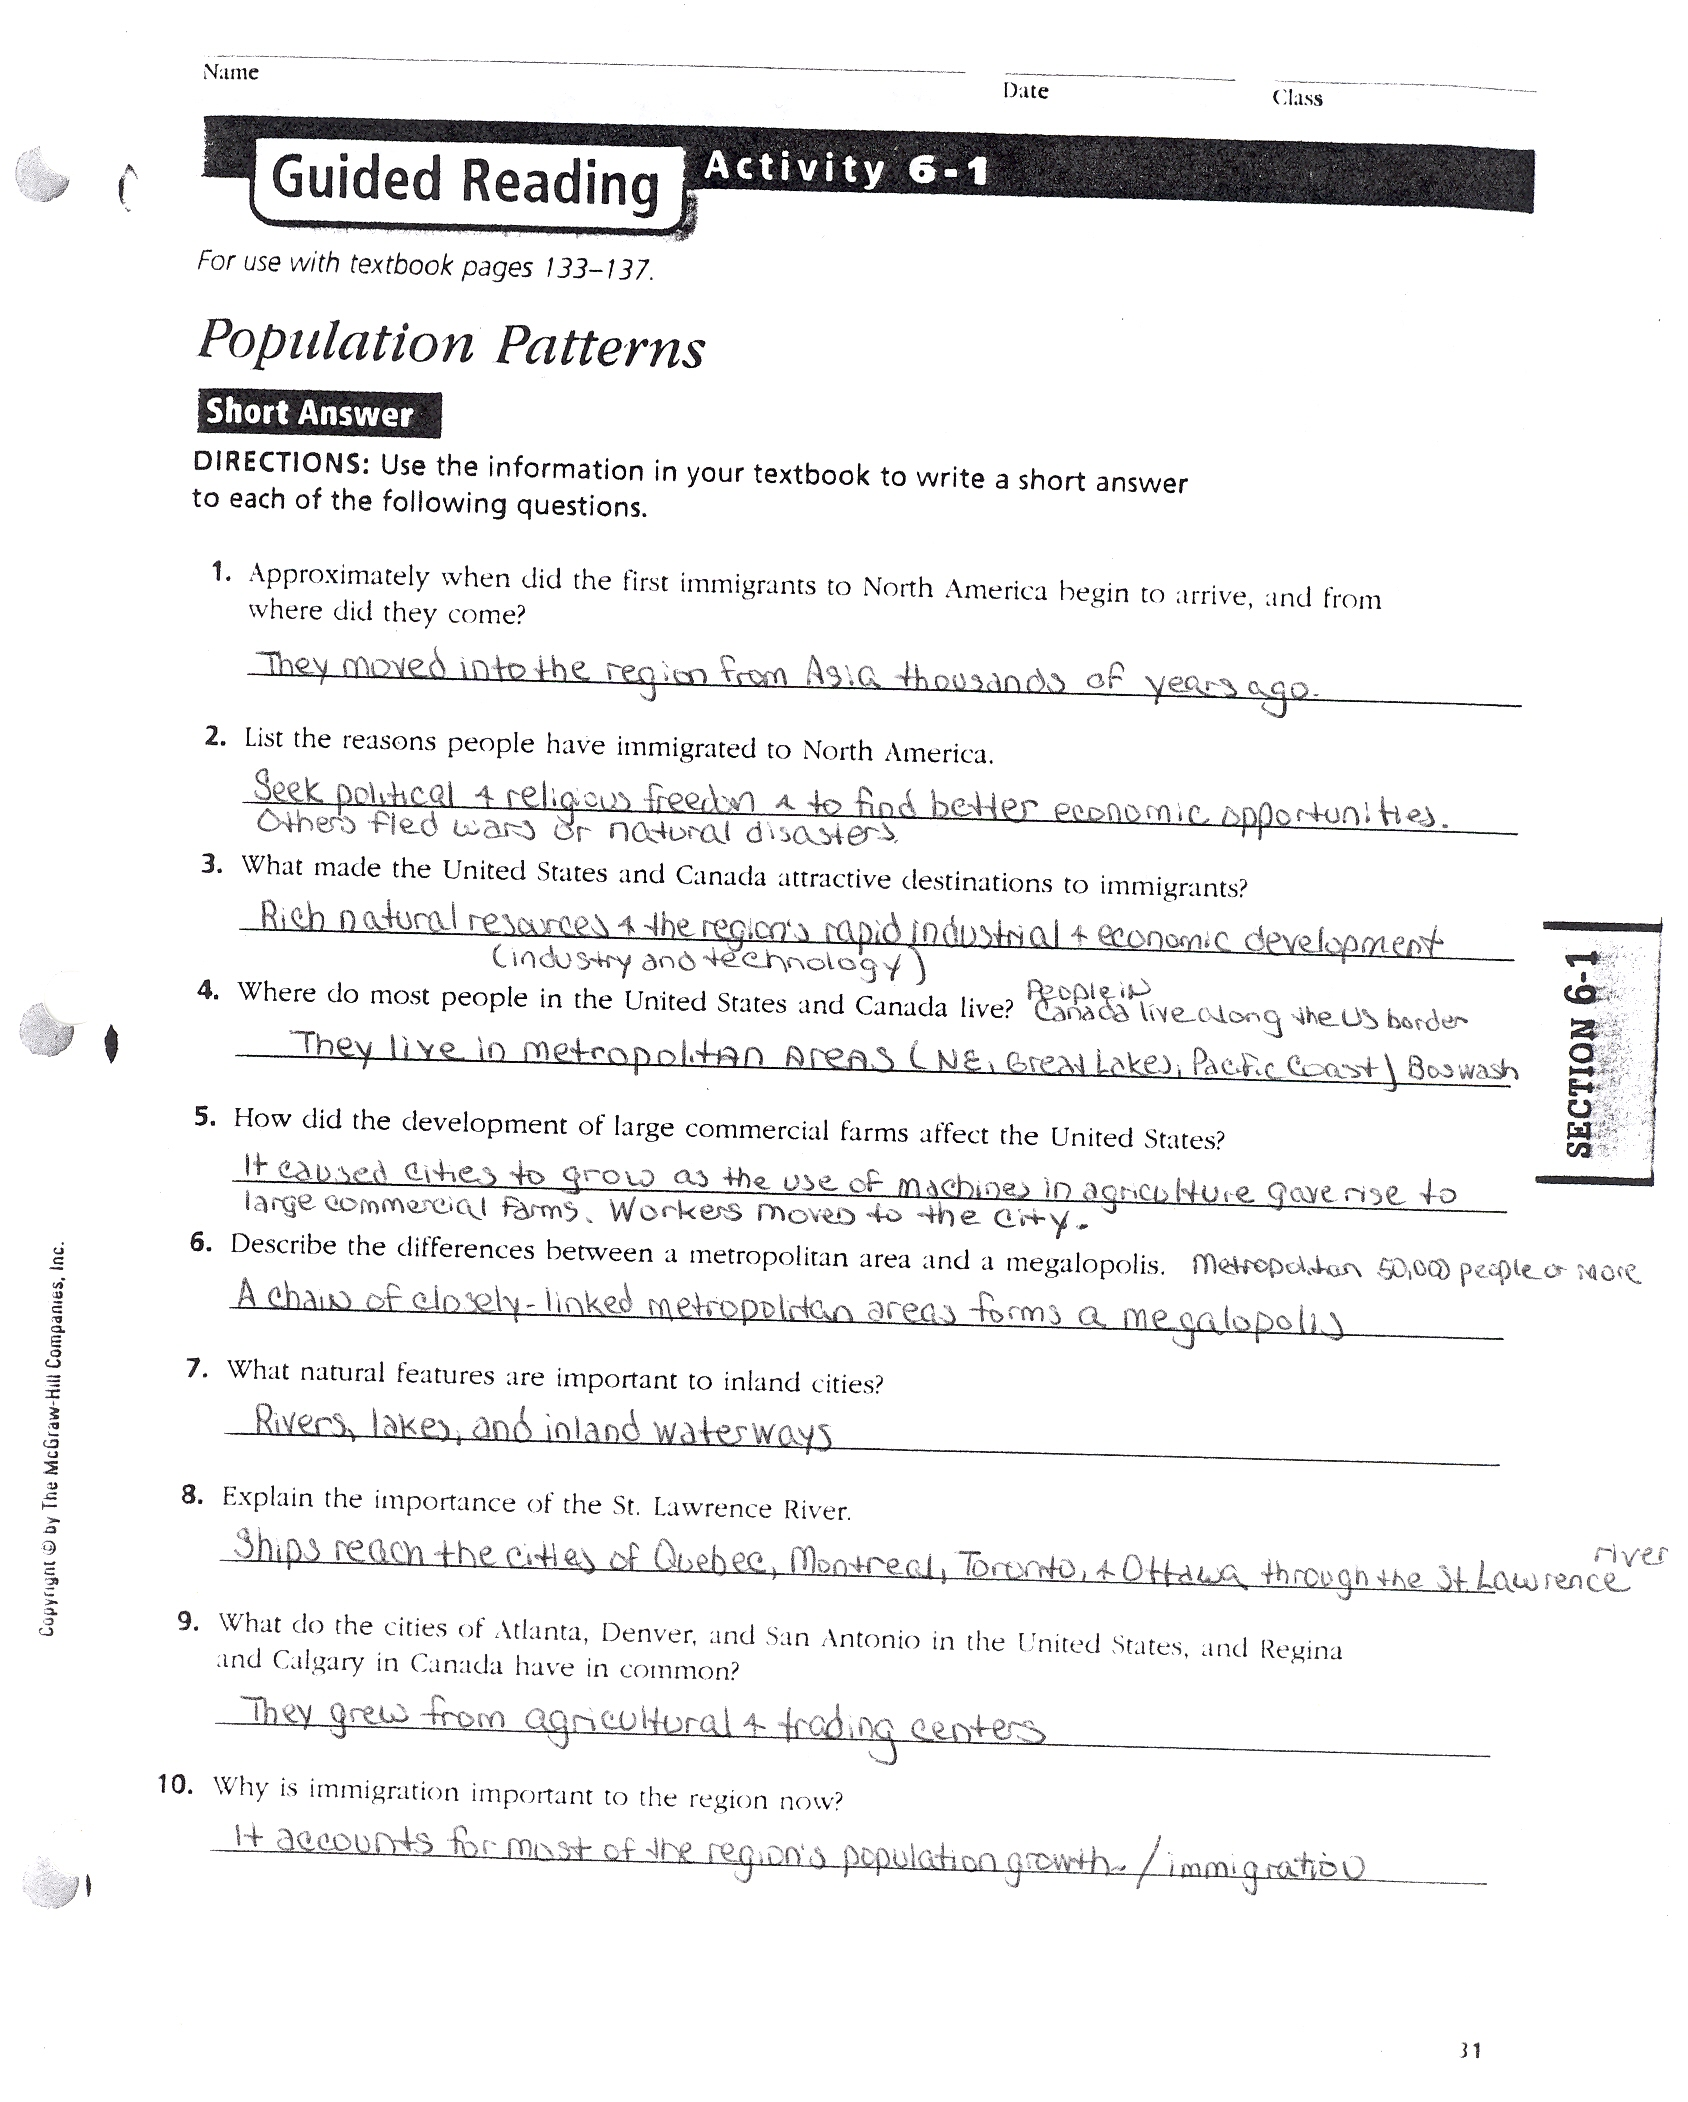 guided reading activity 15 4 answers online user manual u2022 rh pandadigital co McGraw-Hill Textbooks Social Studies McGraw-Hill Geography Textbook Online